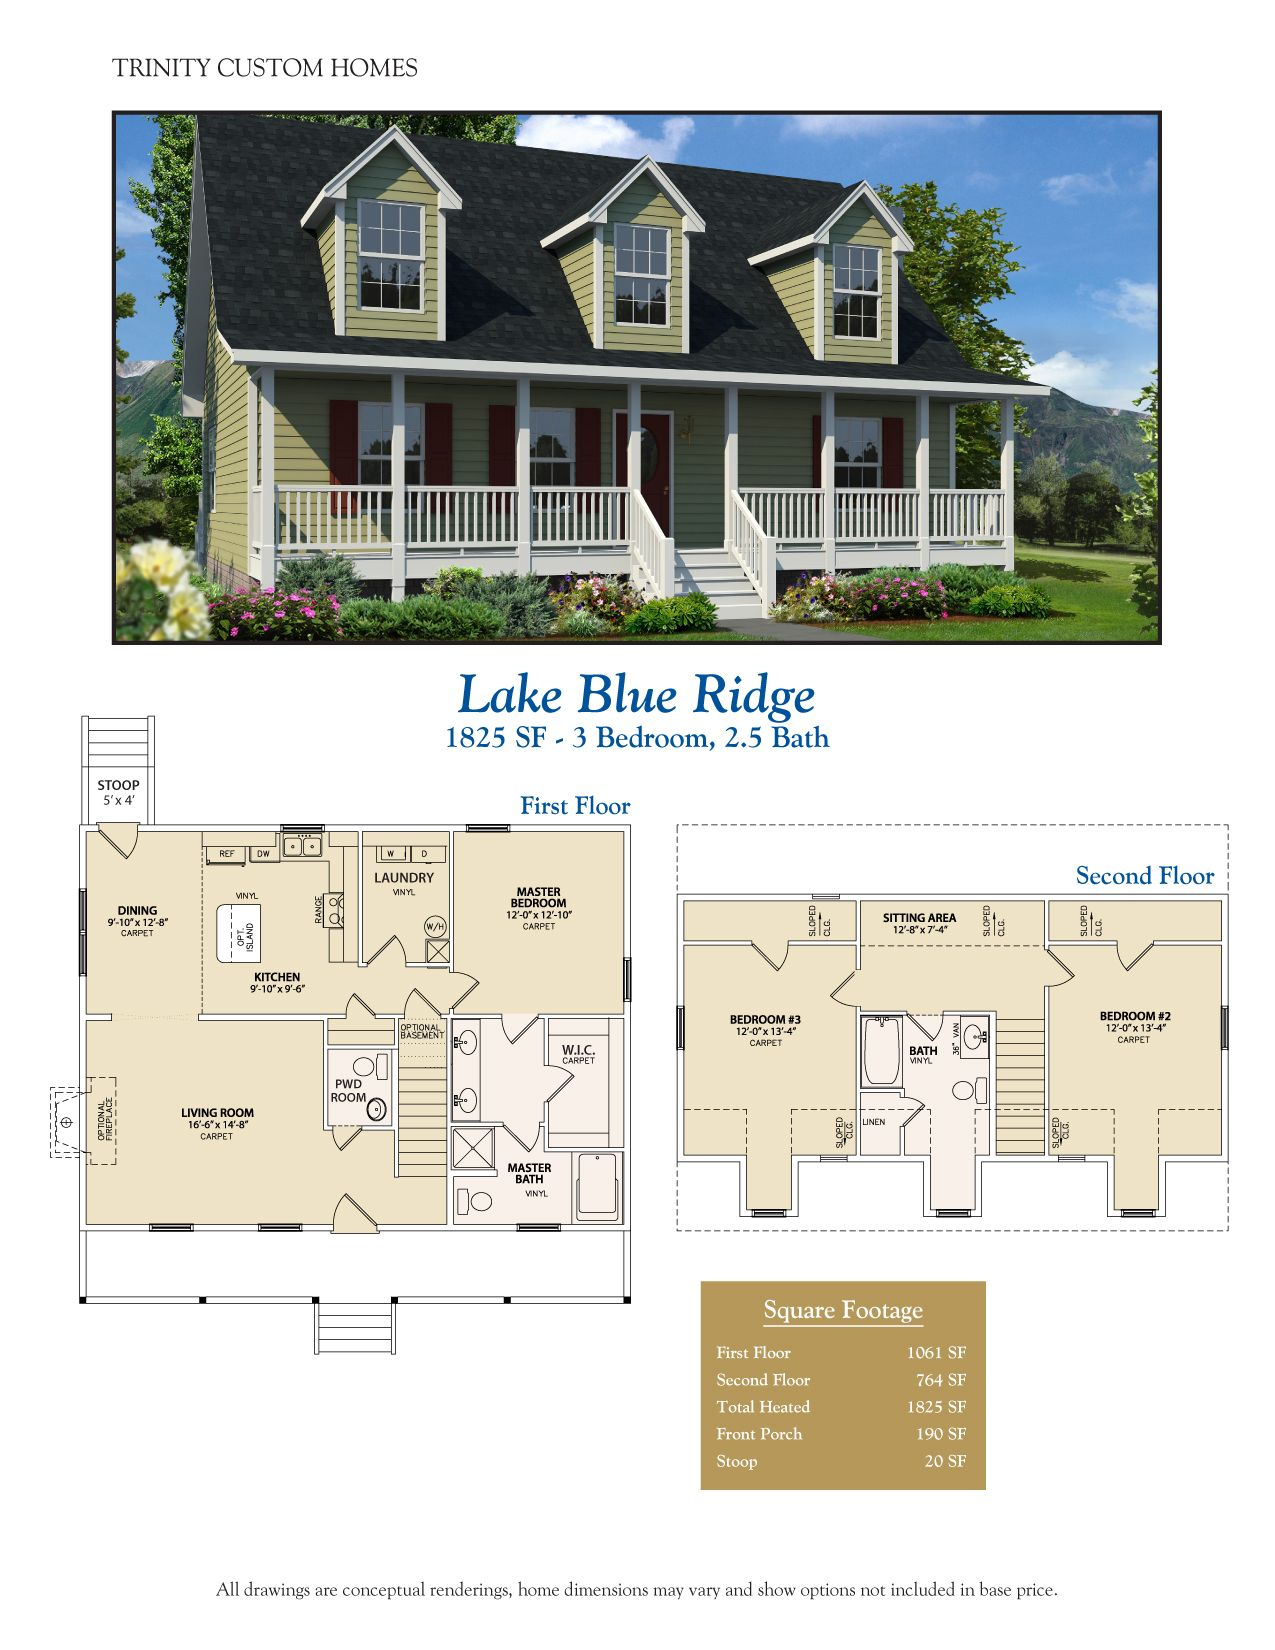 Take A Look At All Of Trinity Custom Homes Georgia Floor Plans Here We Have A Lot To Offer So Contact Us Today For More House Plans Floor Plans Custom Homes